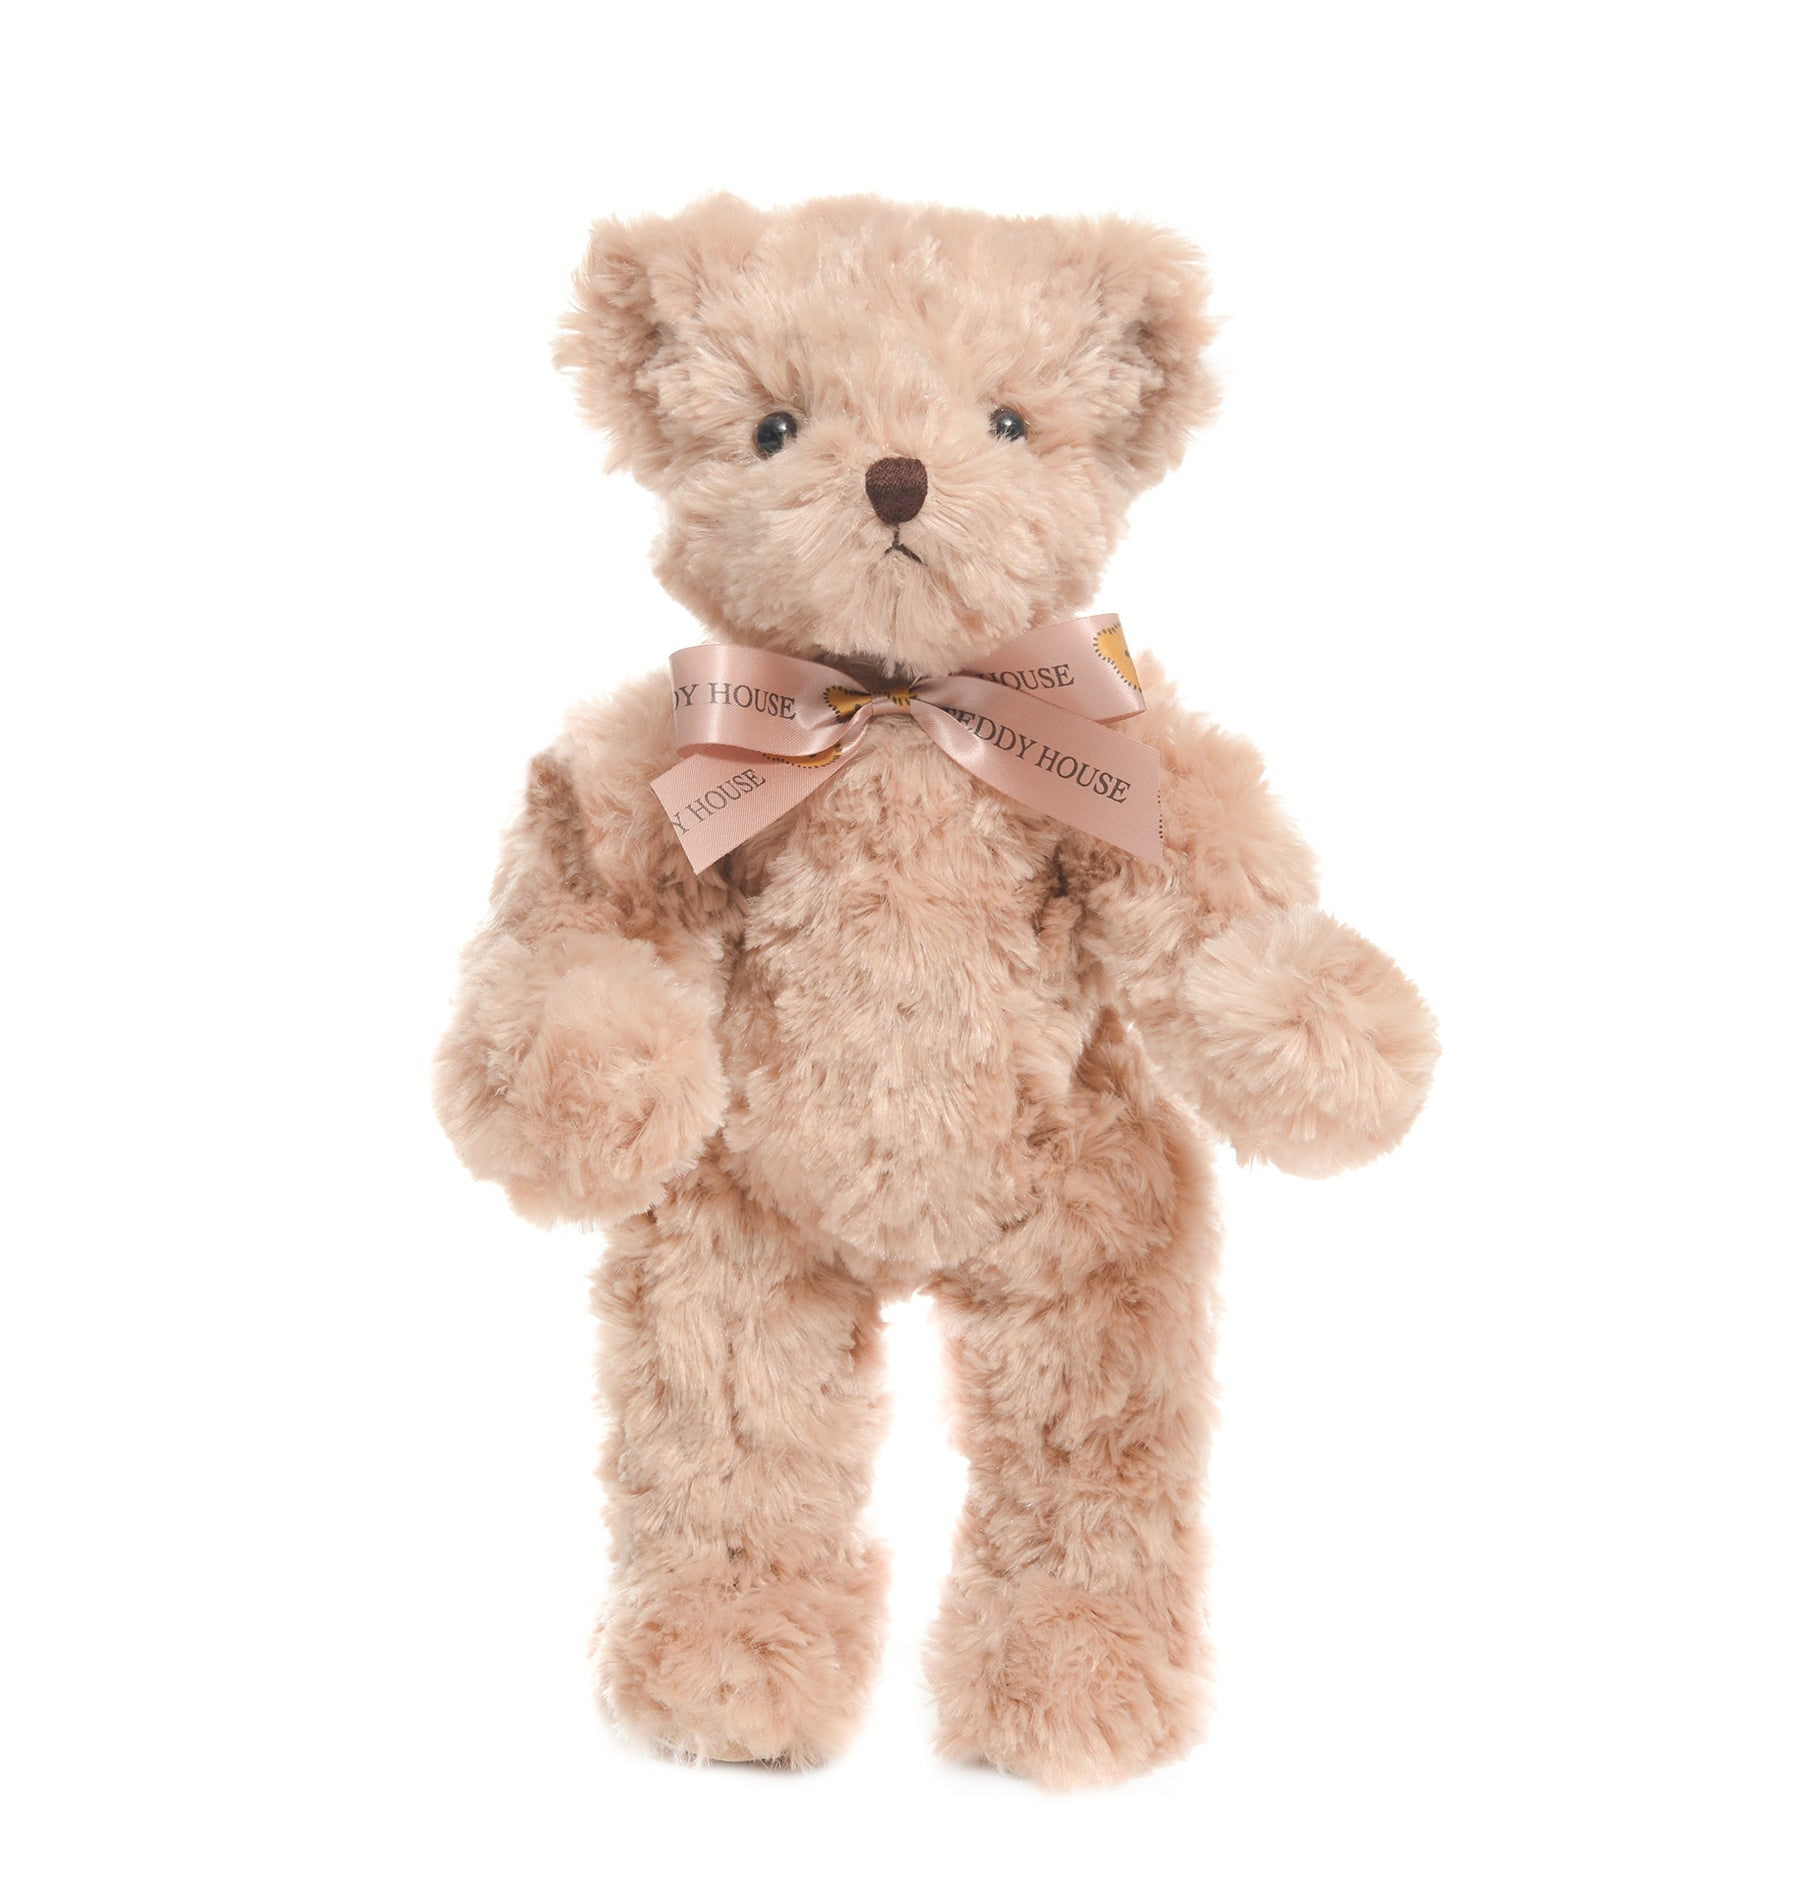 TEDDY HOUSE BONEKA TEDDY BEAR TOM BEAR 10 INCHI